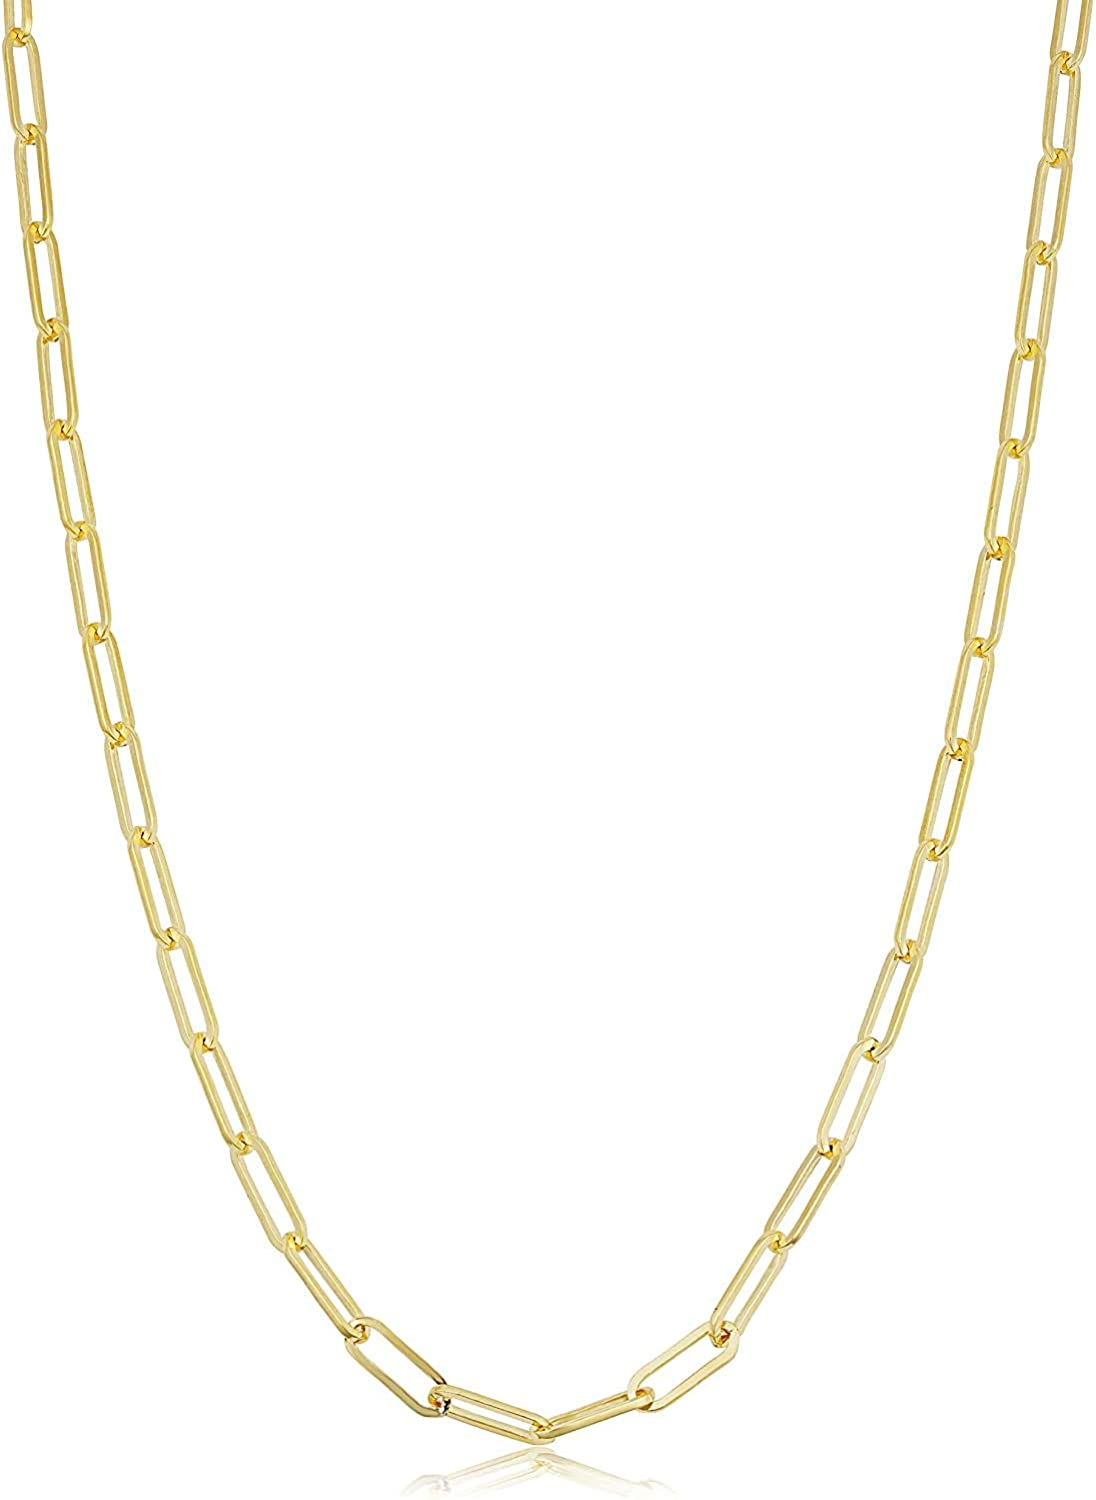 MCS Jewelry 14k Yellow Gold Paperclip Link Chain Necklace 2.5 mm (18